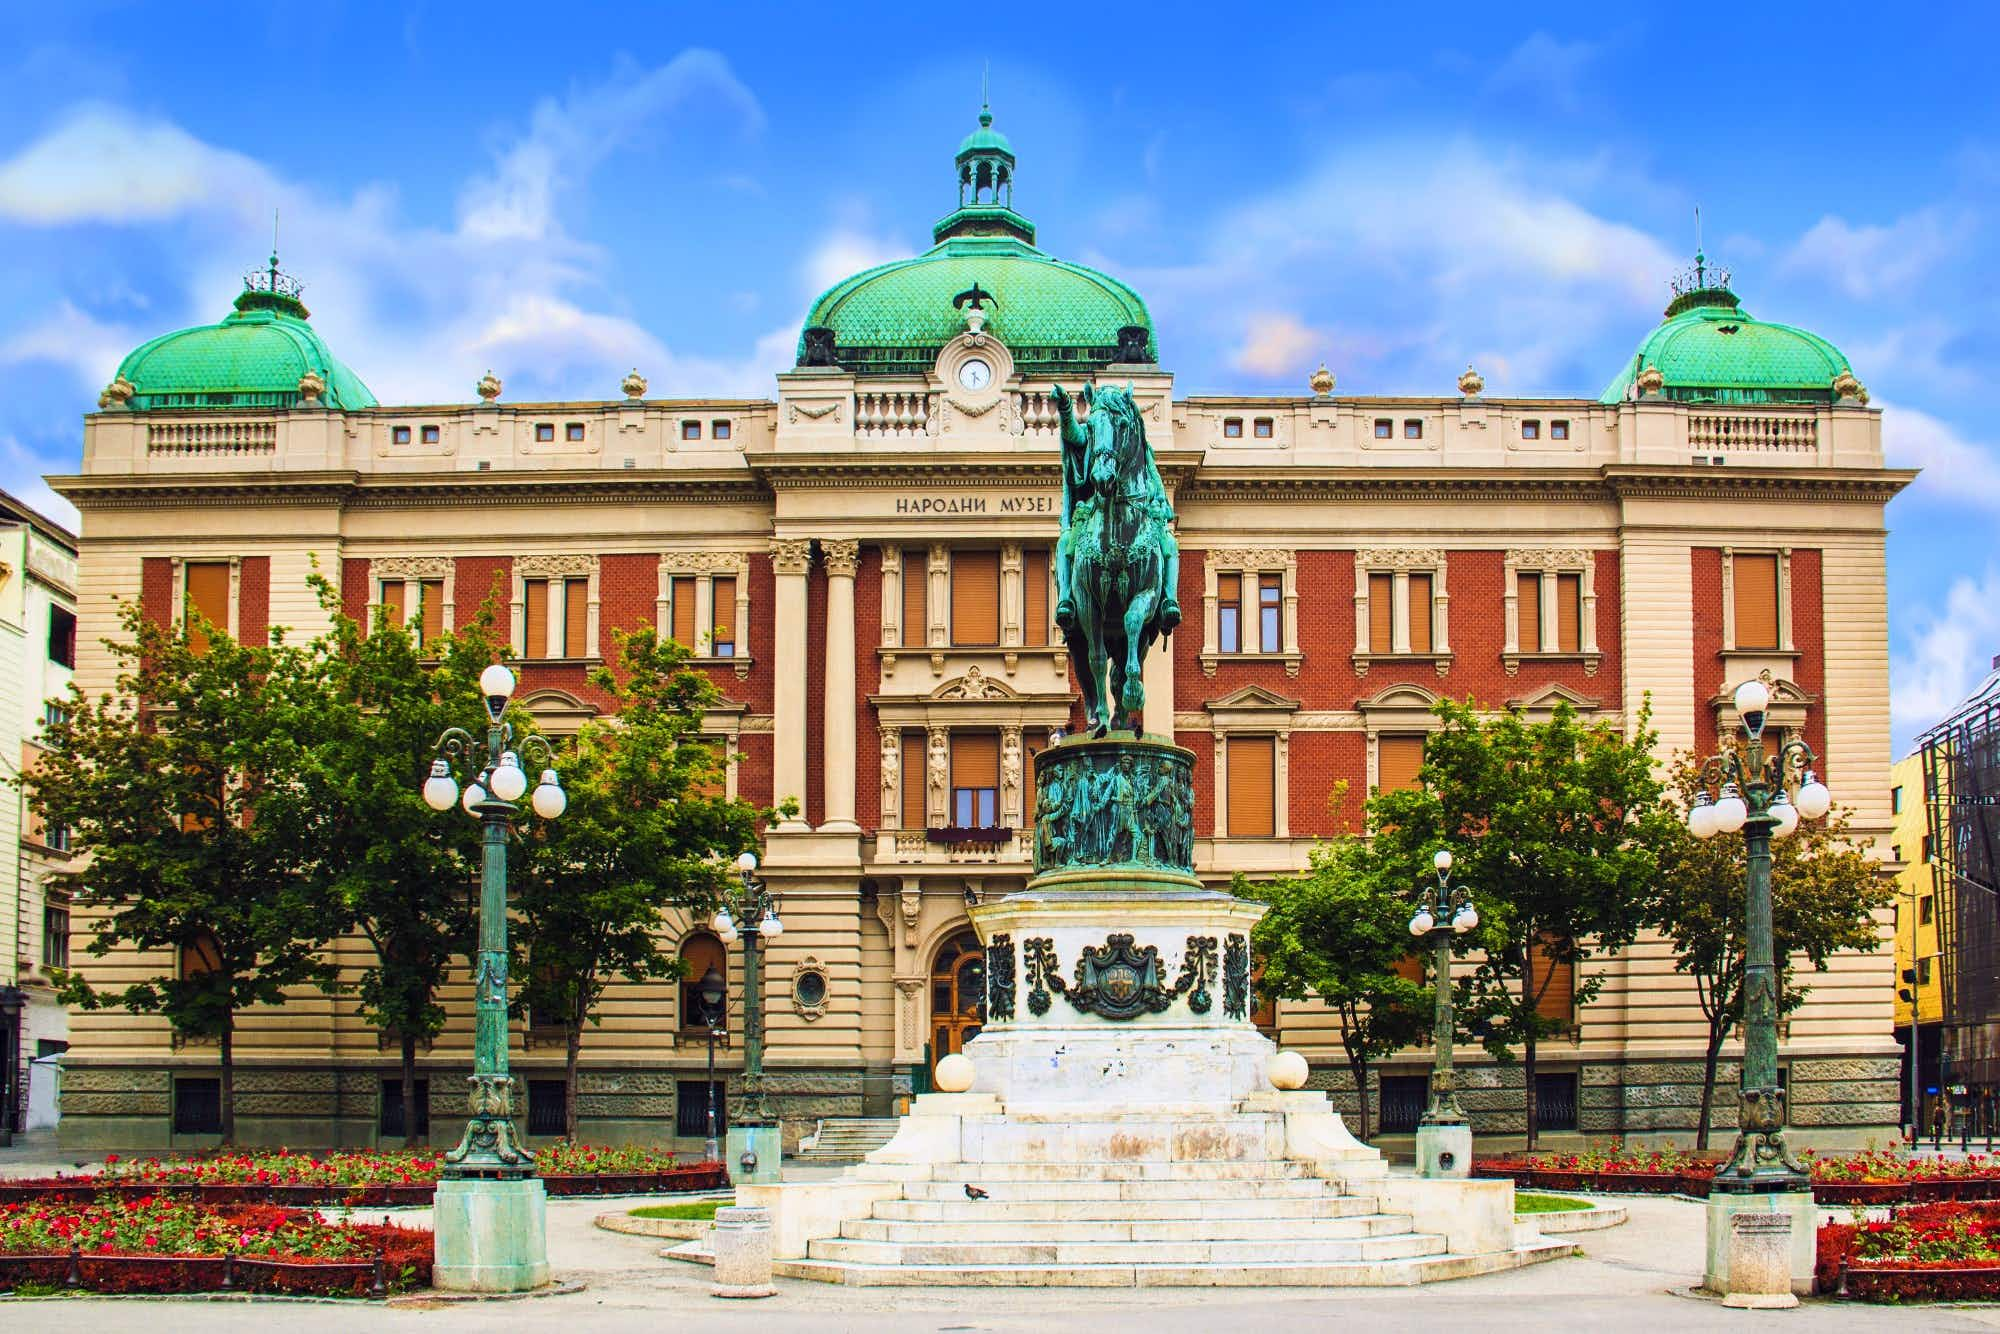 Belgrade's National Museum reopens after being closed for 15 years